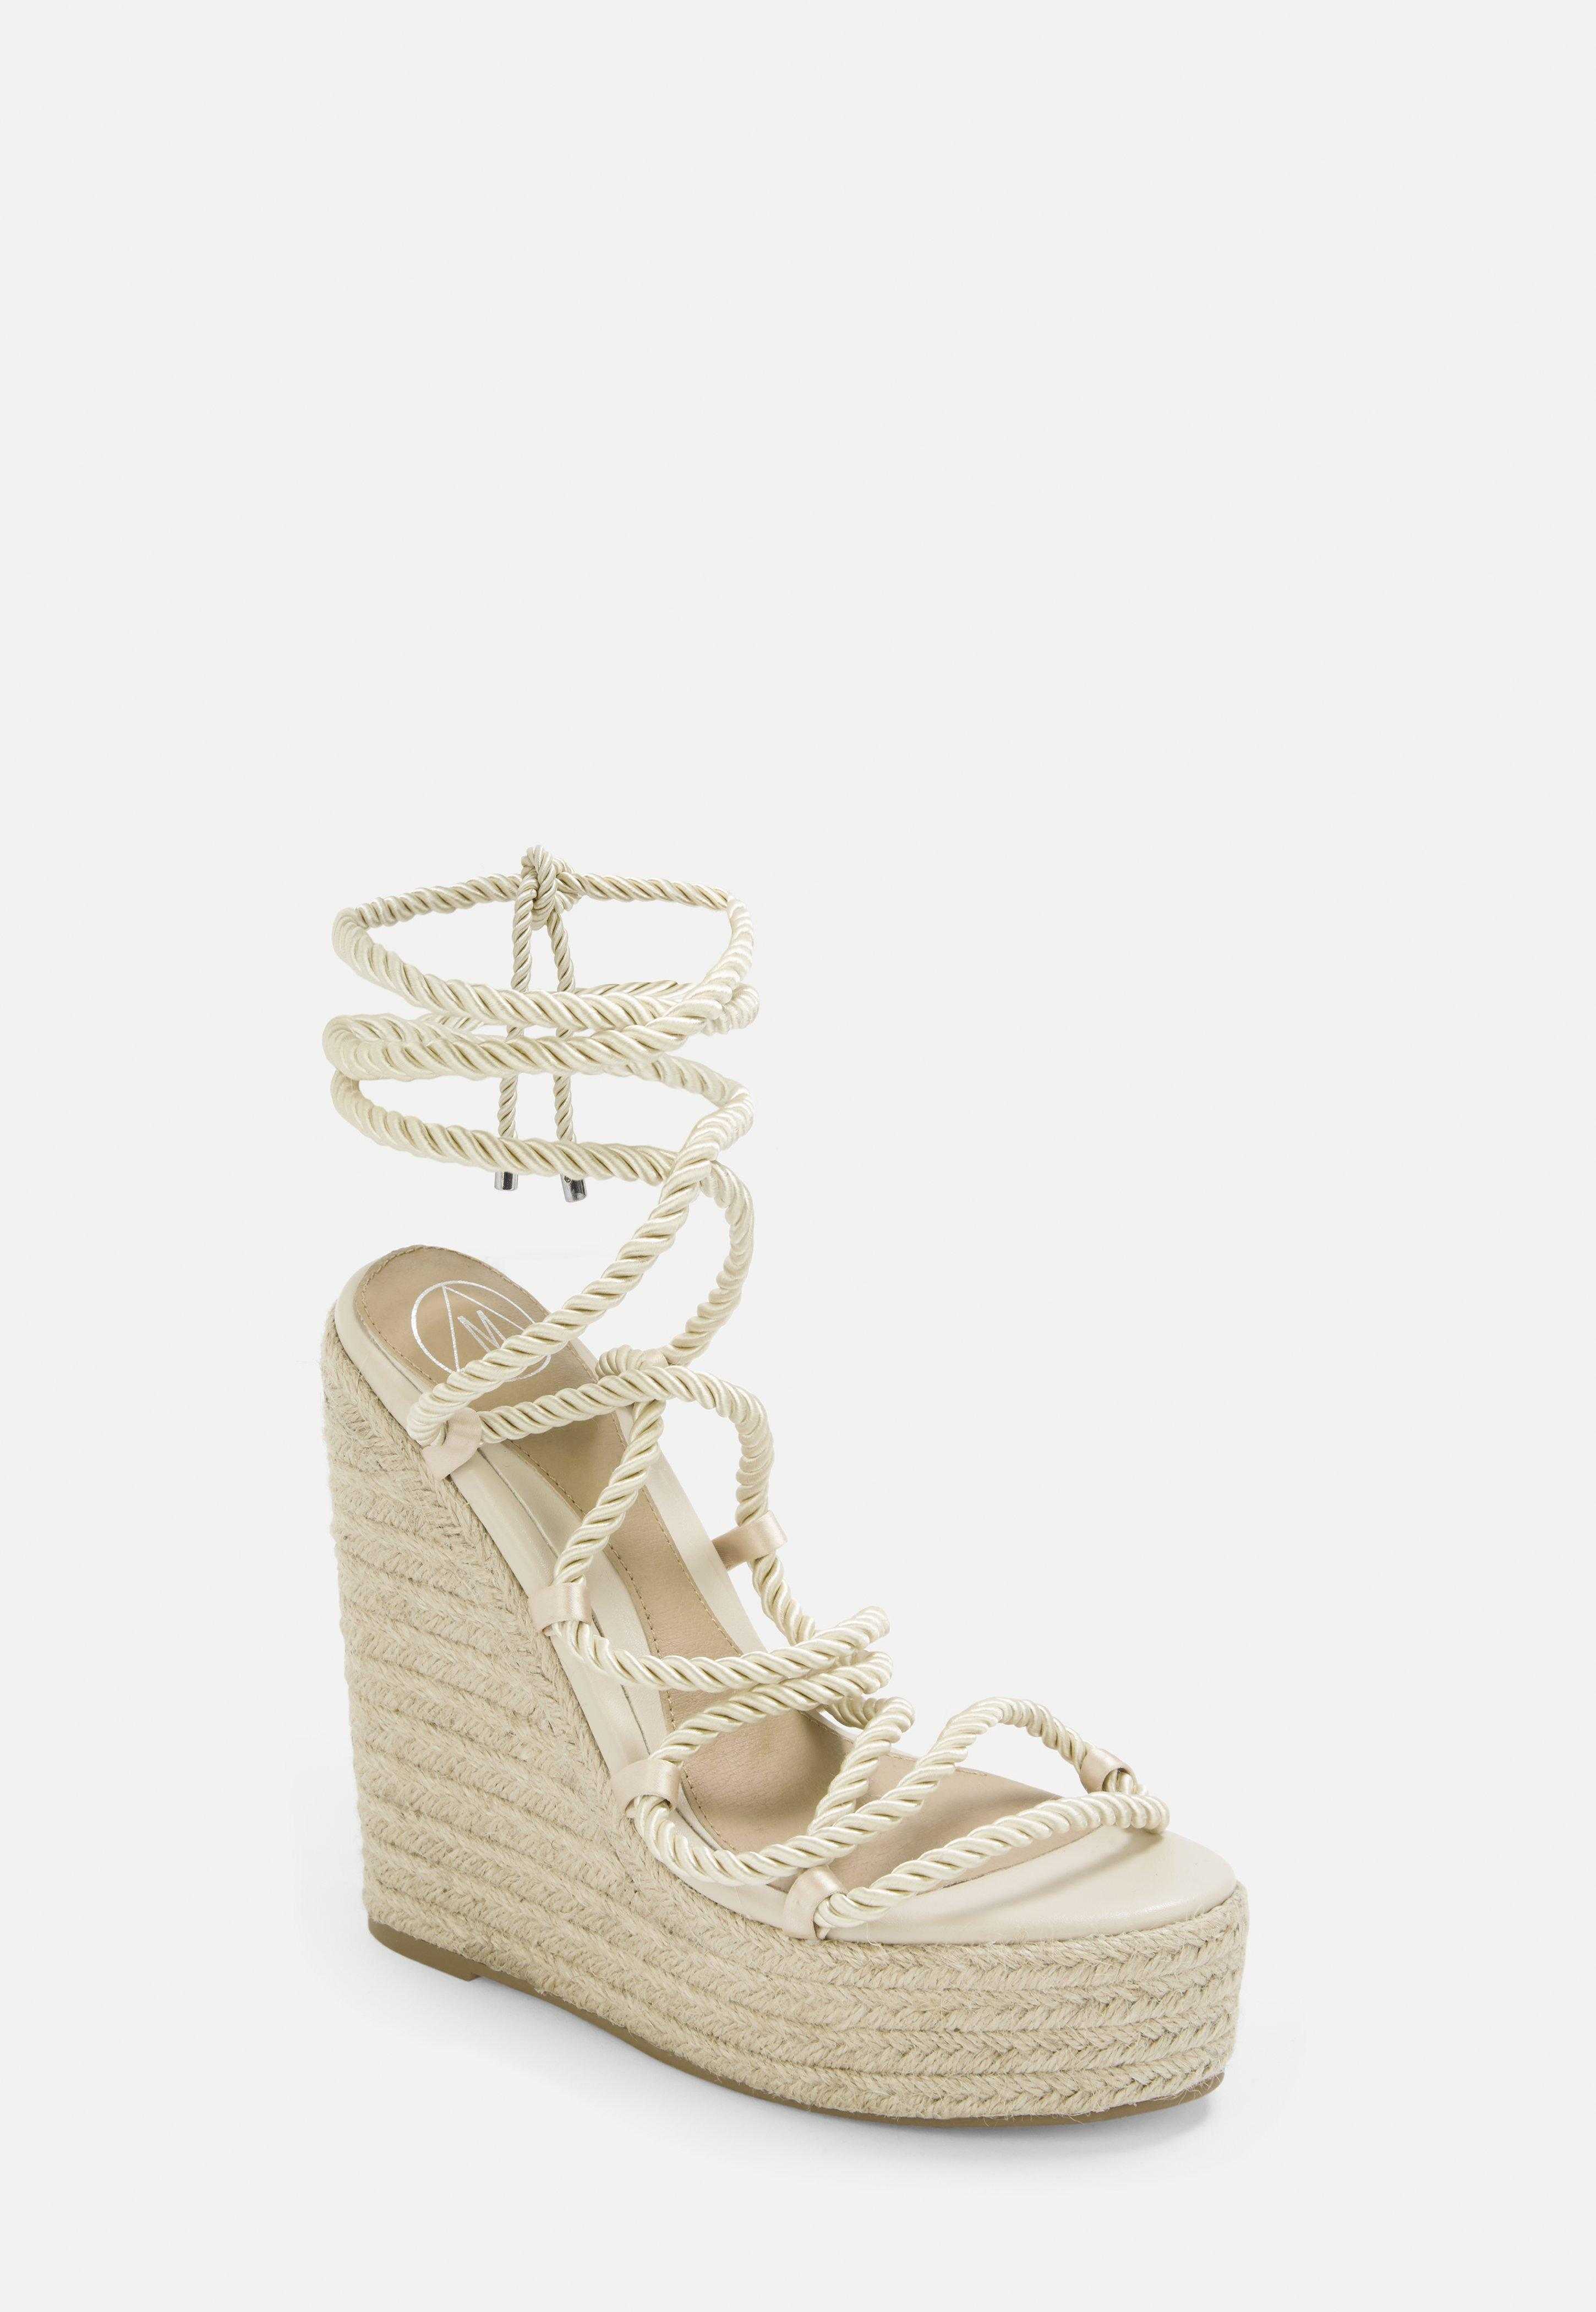 Rope Lace Beige Jute Wedges 8kwOnXP0